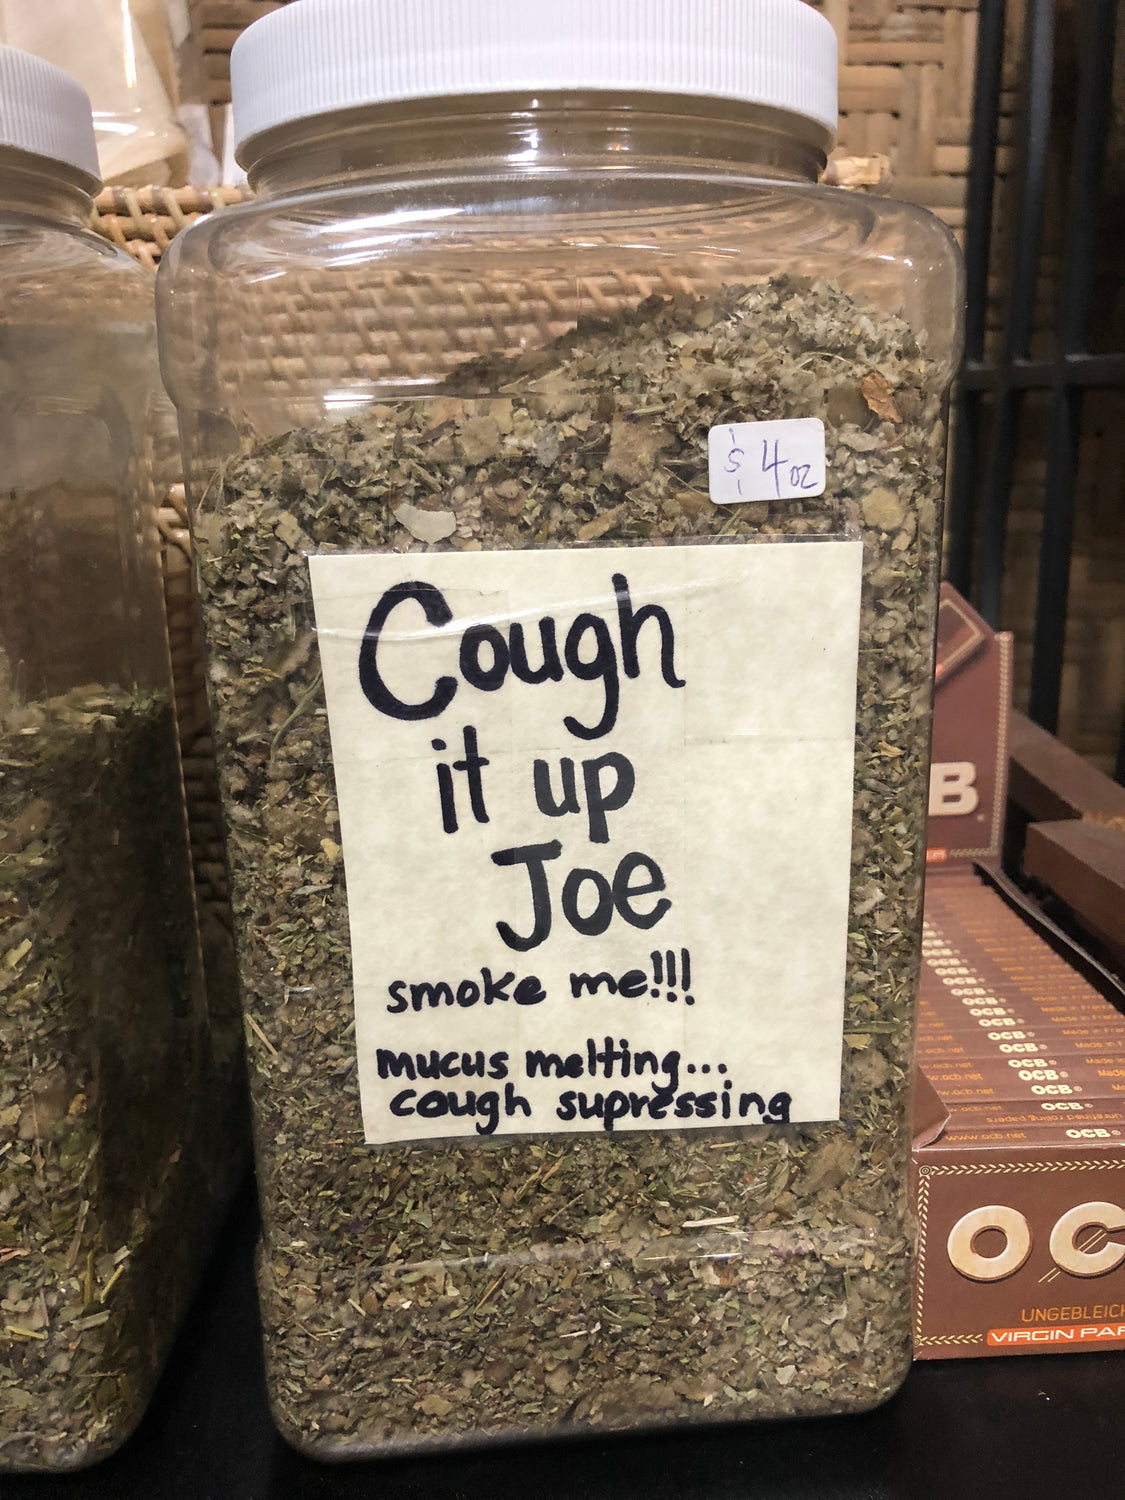 Cough it Up Joe- Smoking blend